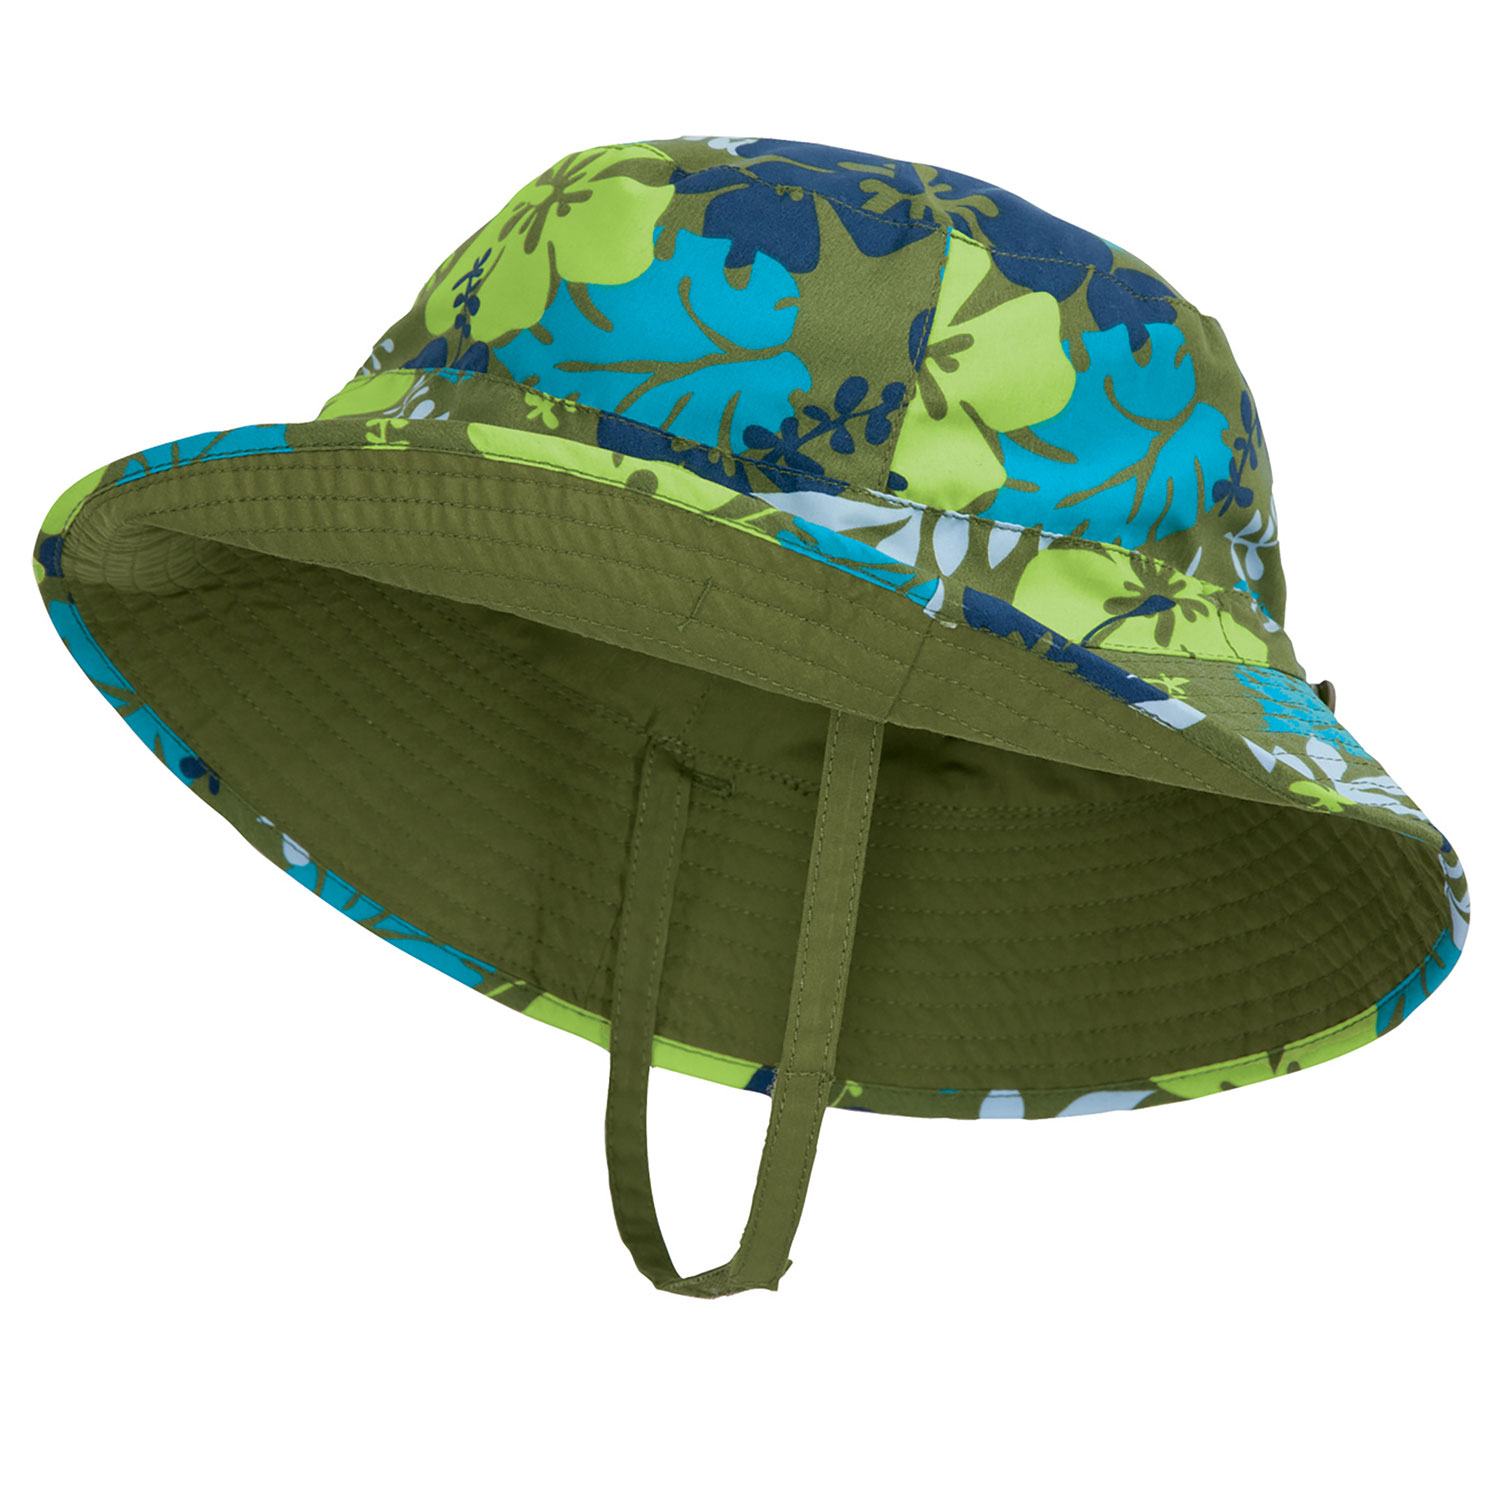 Sun Smarties Aloha Adjustable and Reversible Baby Boy Sun Hat - Hawaiian Print Reverses to a Solid Olive Green Brim Hat  - X-Small, 6-12 Months